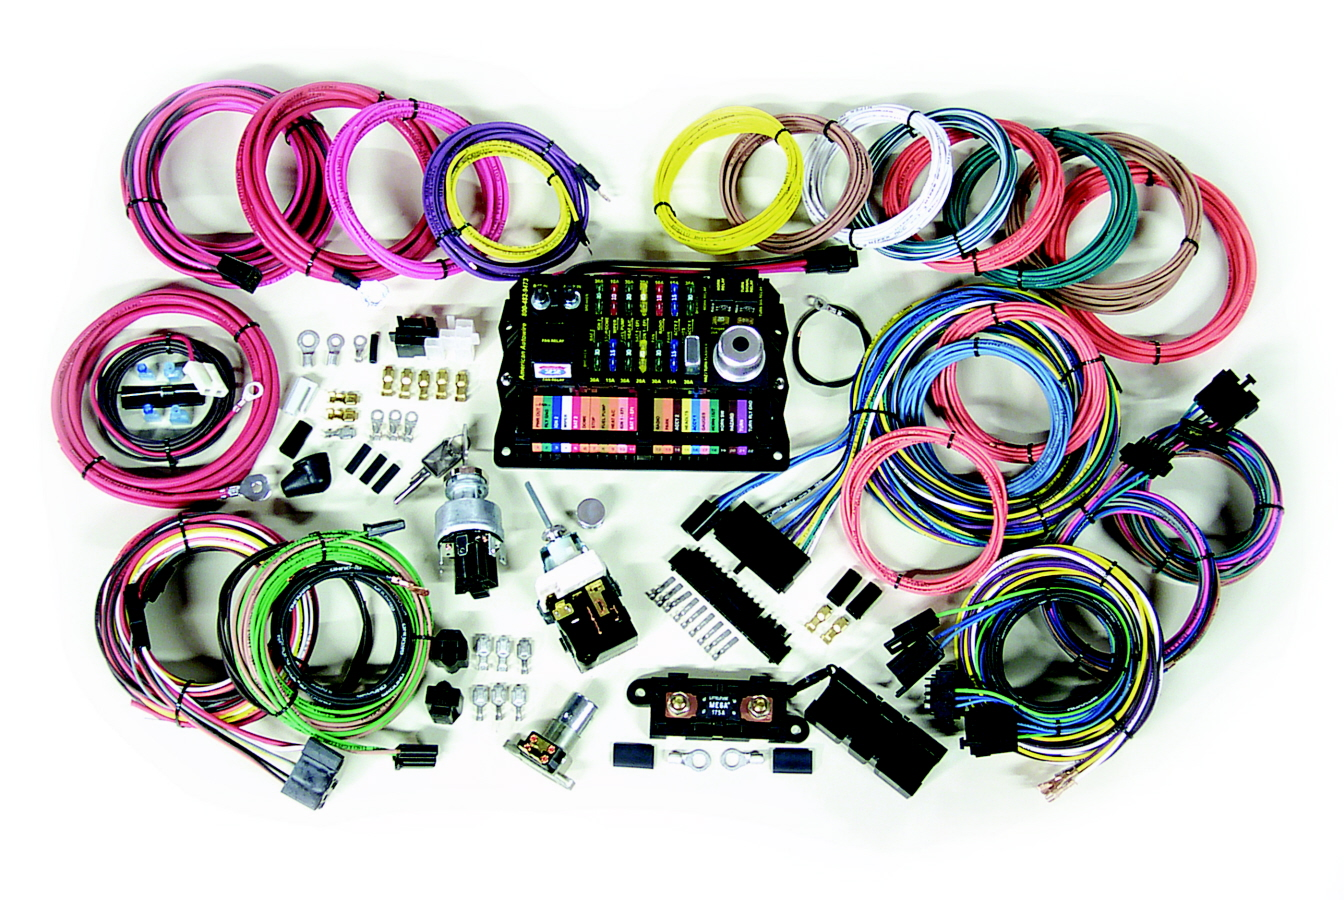 Auto Wiring Harness Kits Diagram Diy Harnesswire Loom Manufacturing Wire Cable Assembly Highway 22 Kit 500695highway